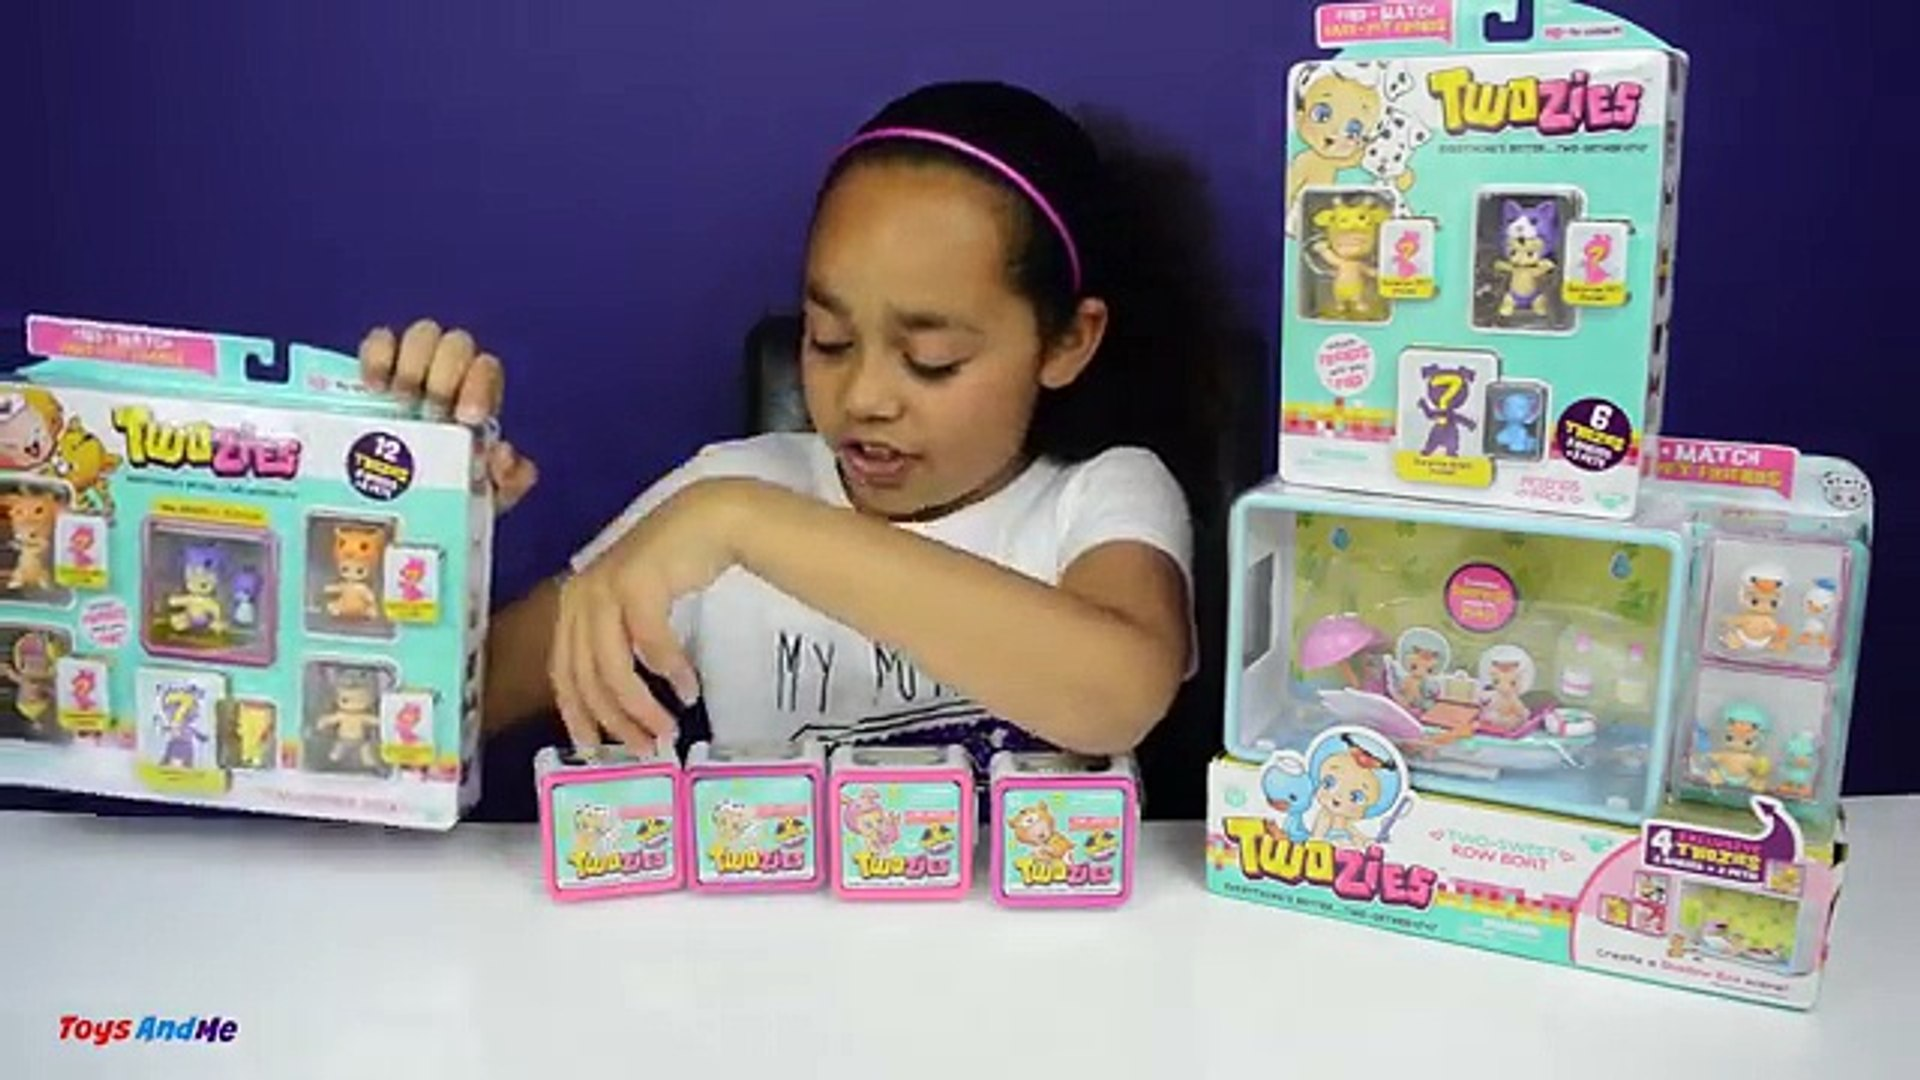 TWOZIES Two Sweet Row Boat - Exclusive Babies & Pets - Twozies Friends & Surprise Packs